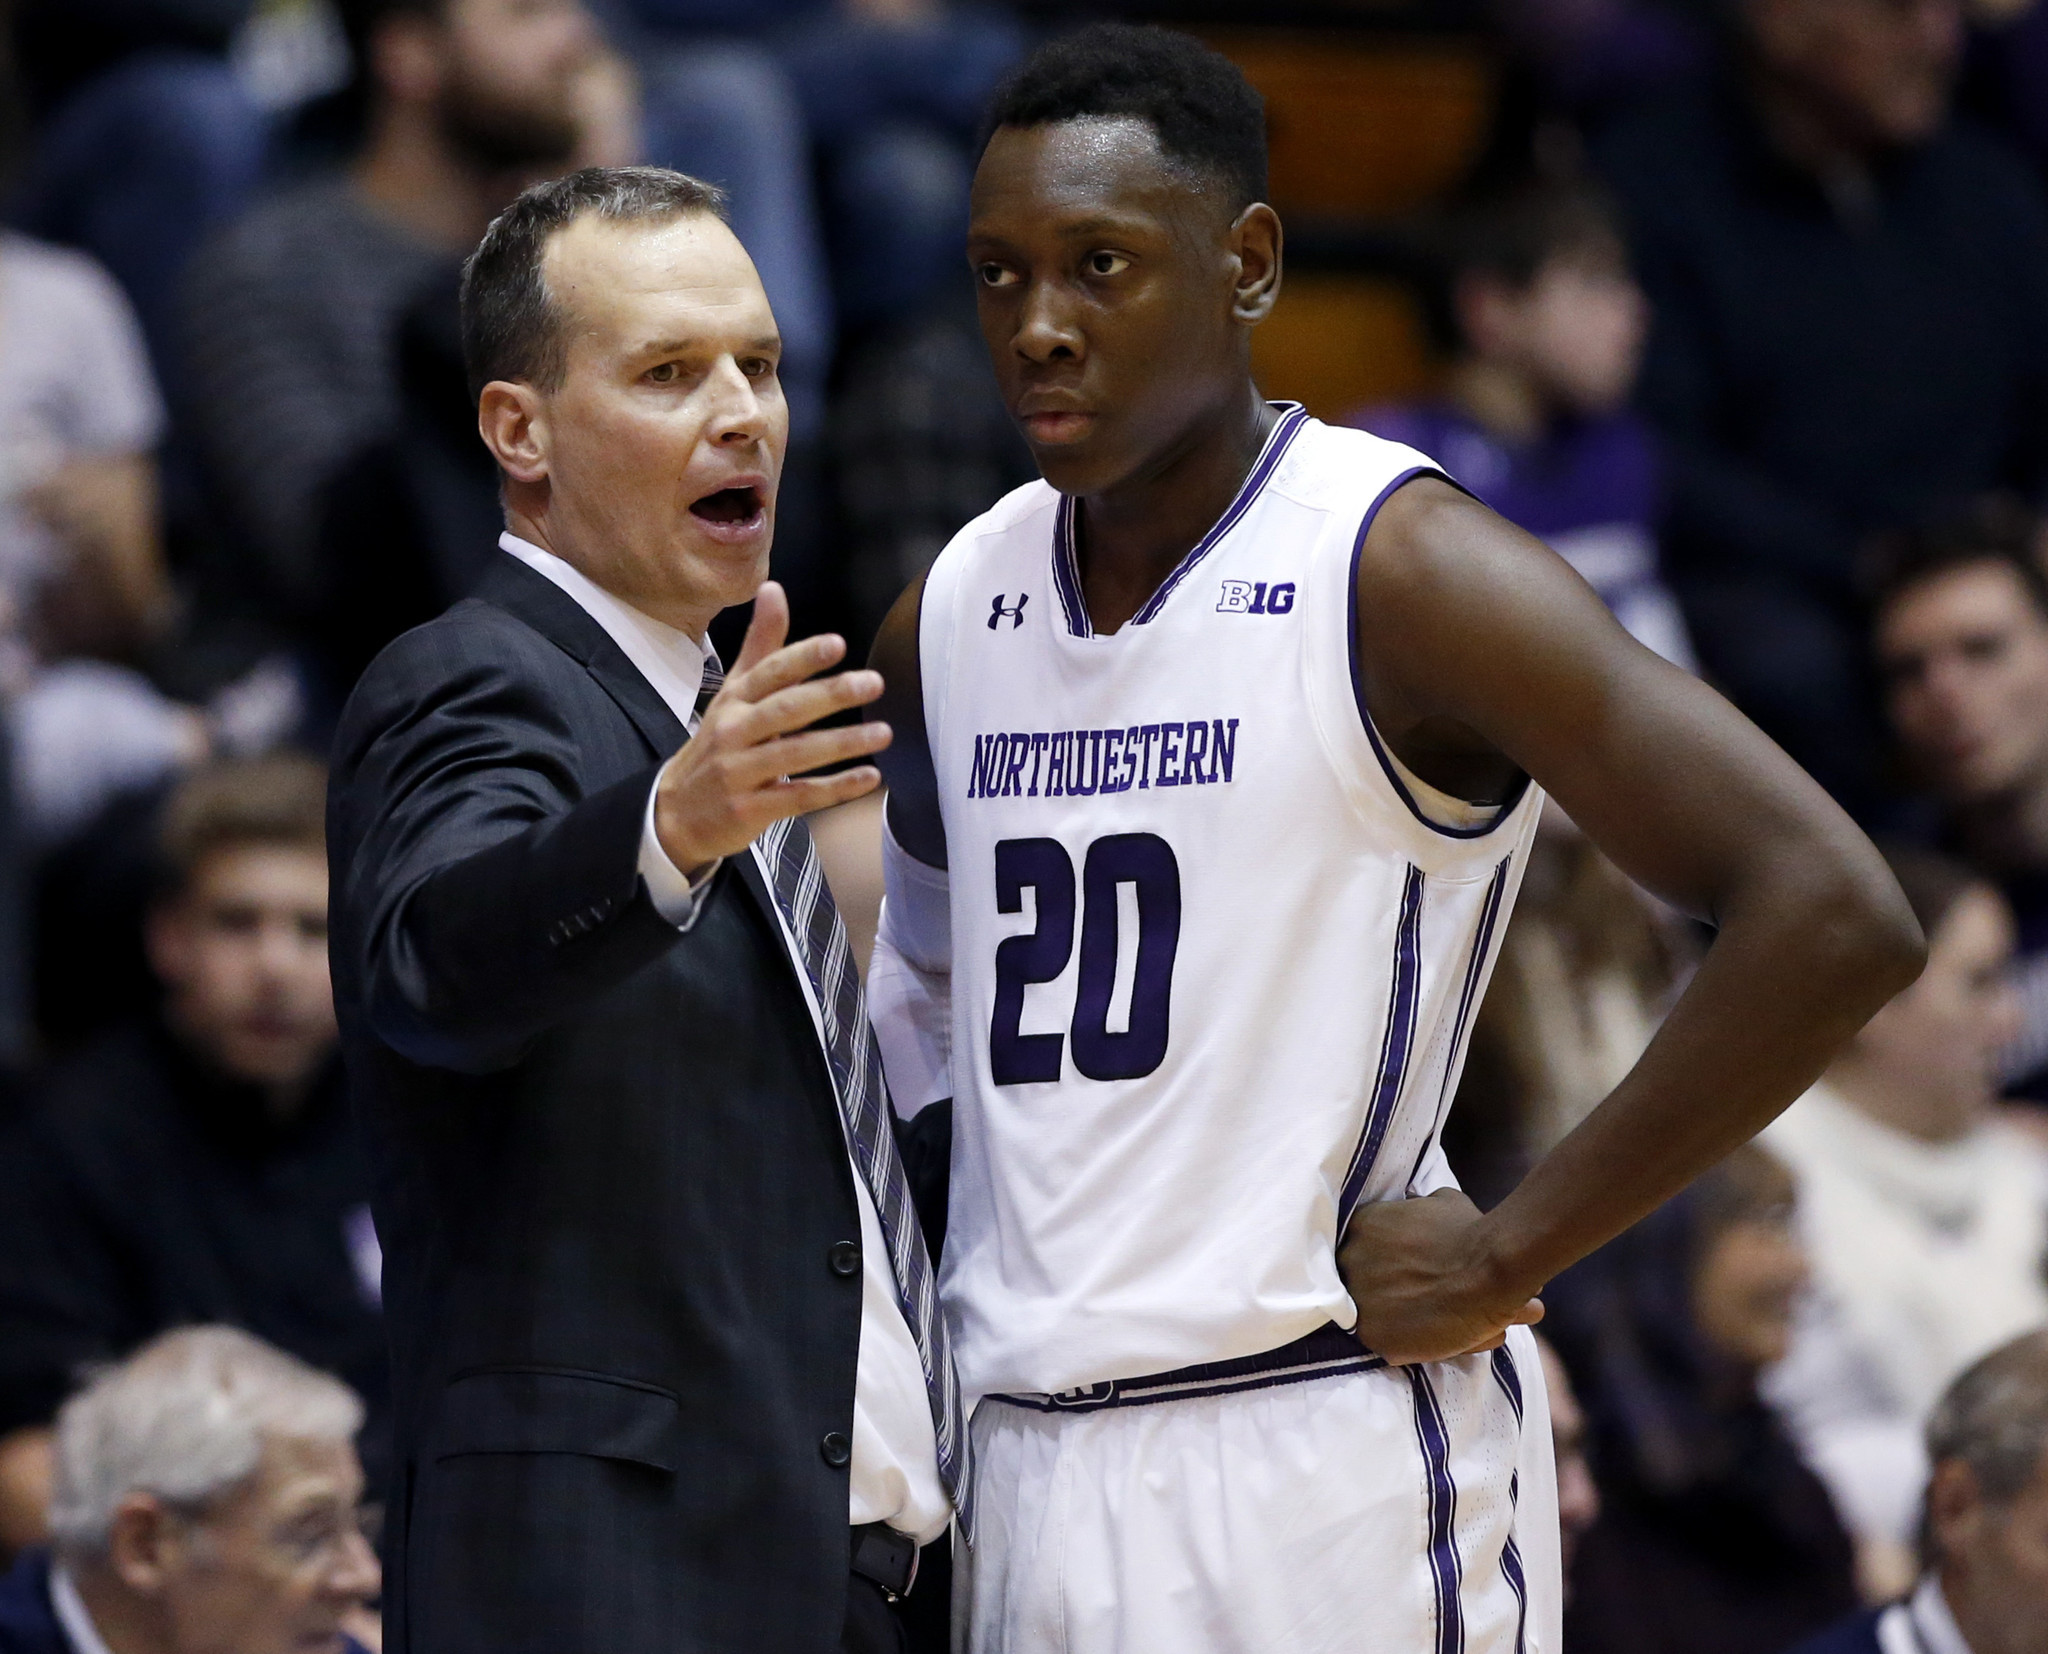 Ct-northwestern-rutgers-ncaa-tournament-spt-0218-20170217